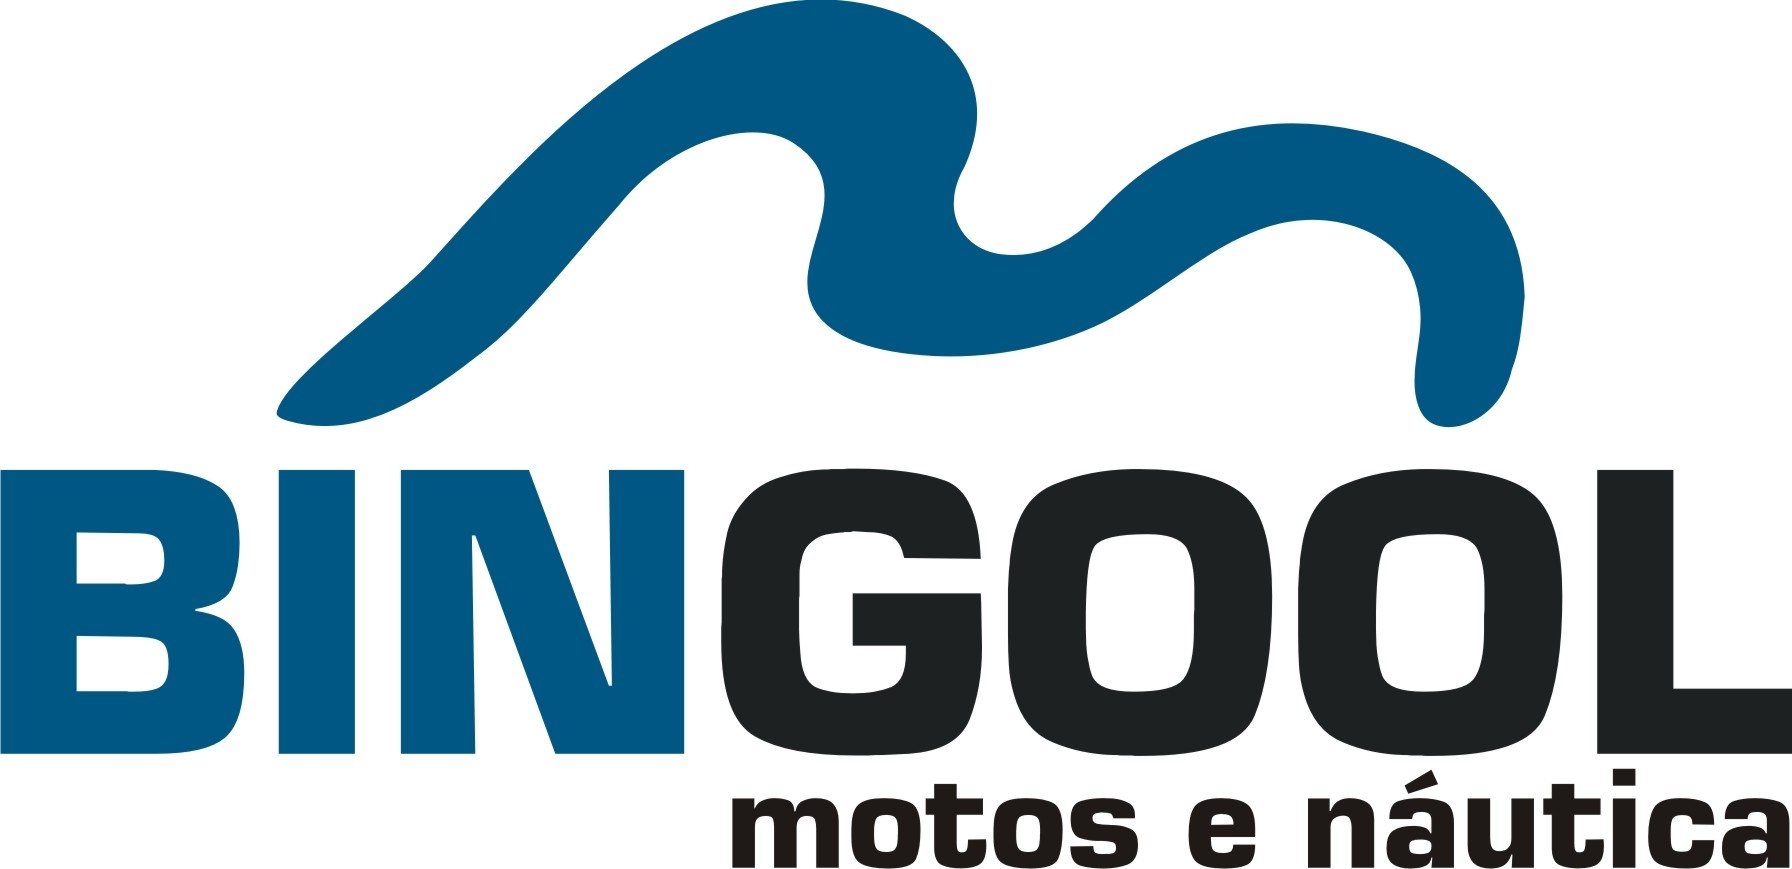 Logotipo BINGOOL